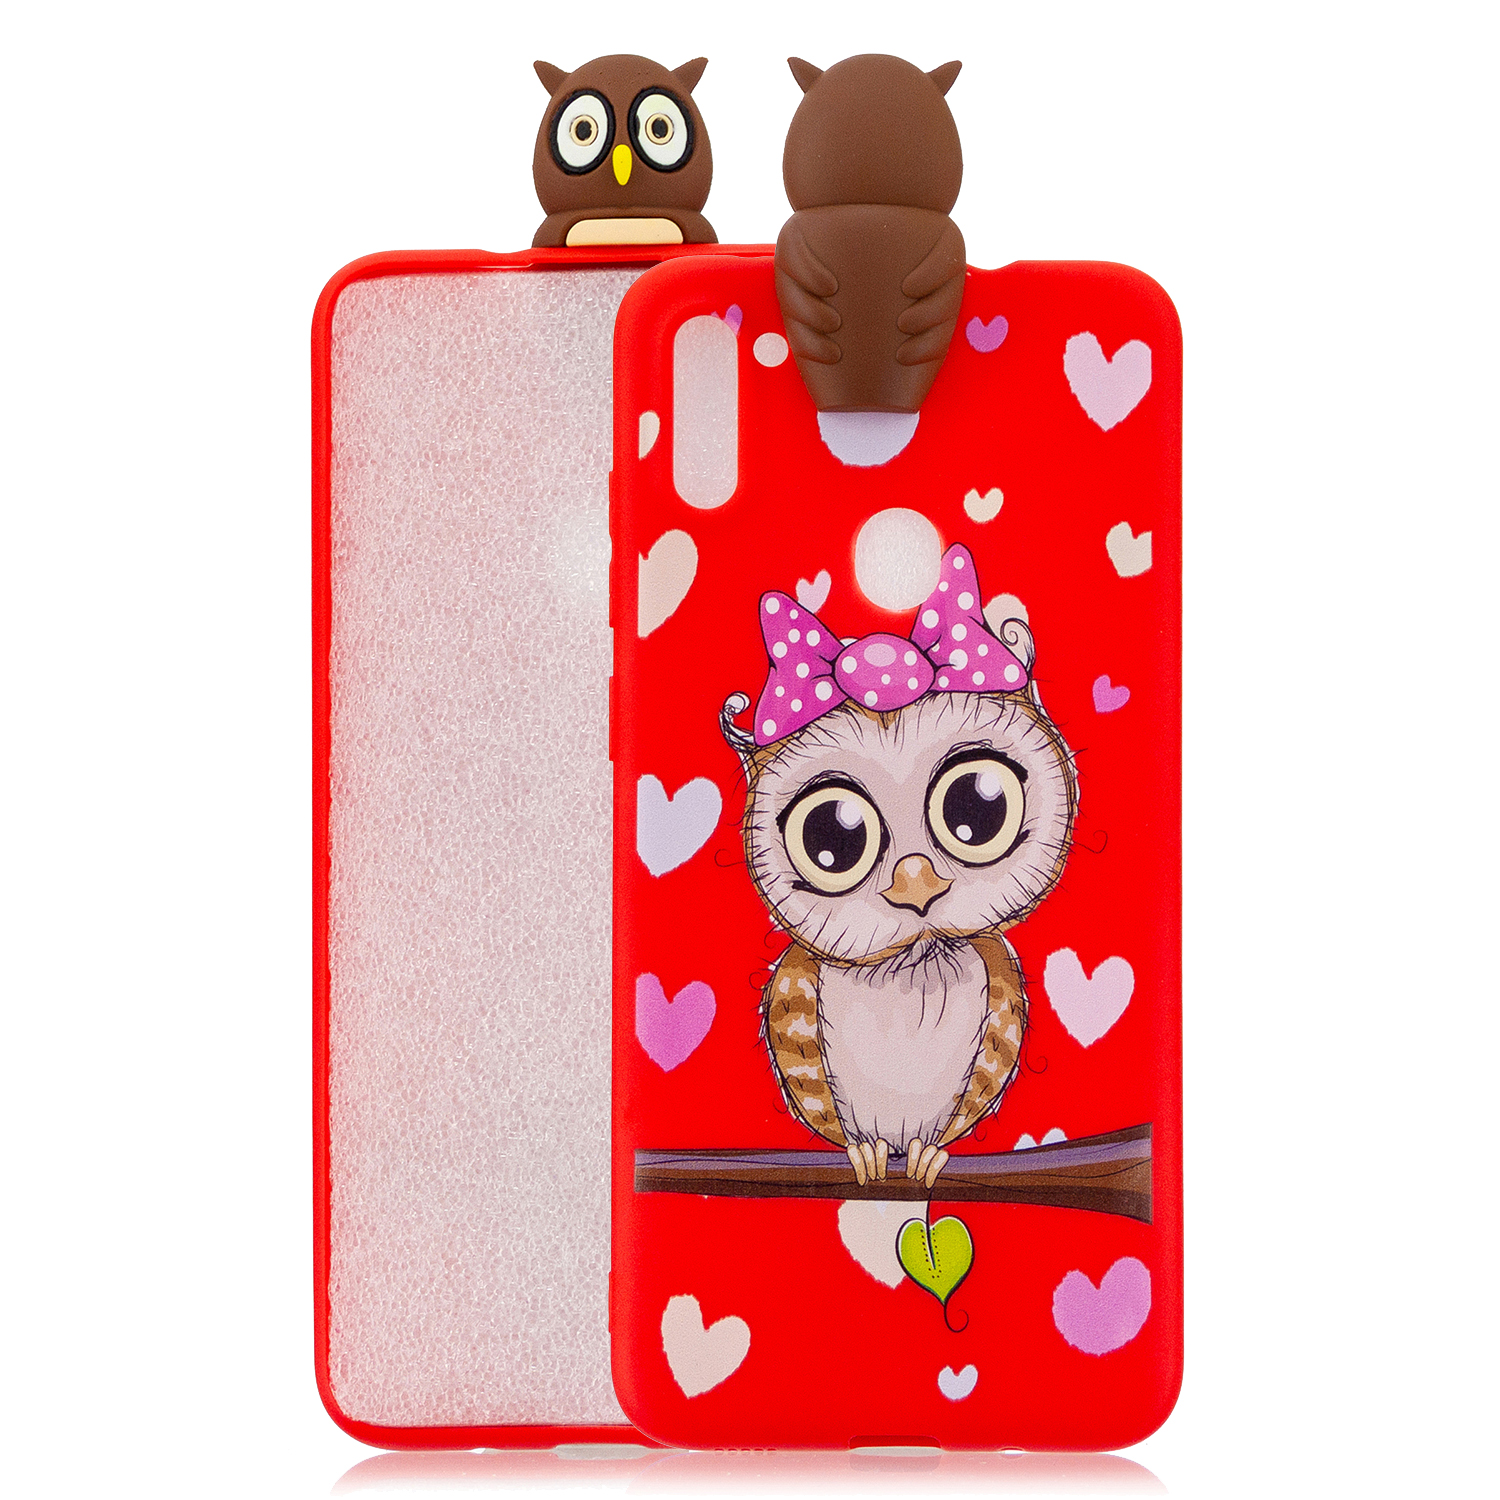 For Samsung A11 Soft TPU Back Cover 3D Cartoon Painting Mobile Phone Case Shell Red owl